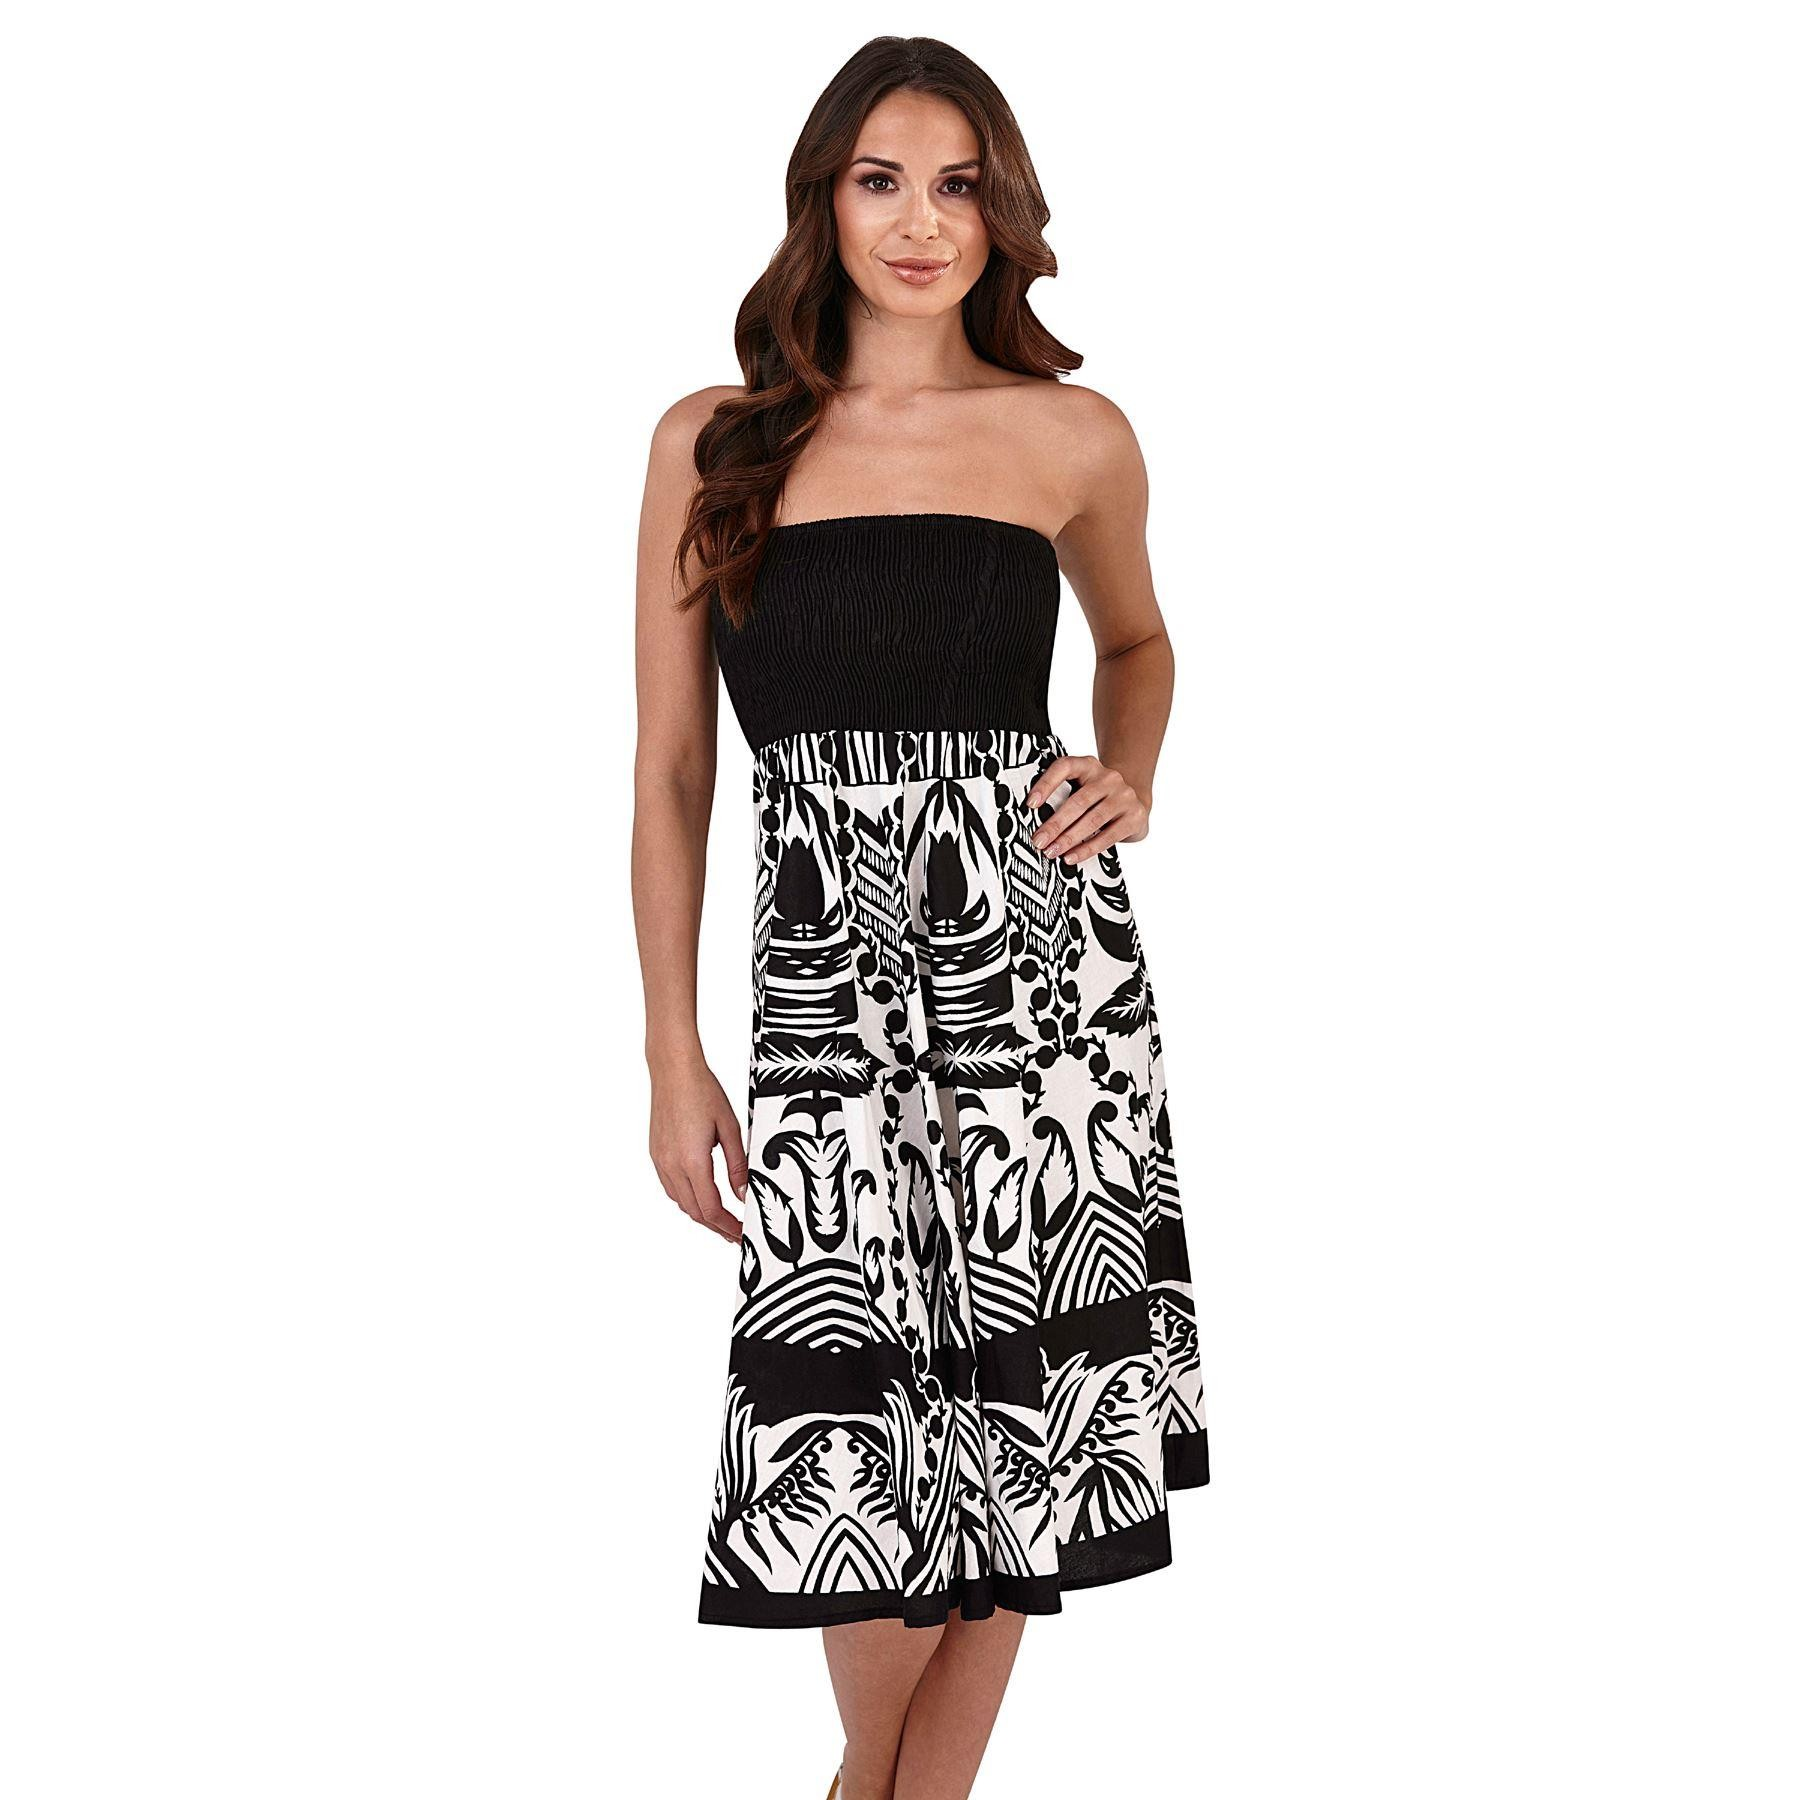 Pistachio Floral 2 in 1 Dress - Black